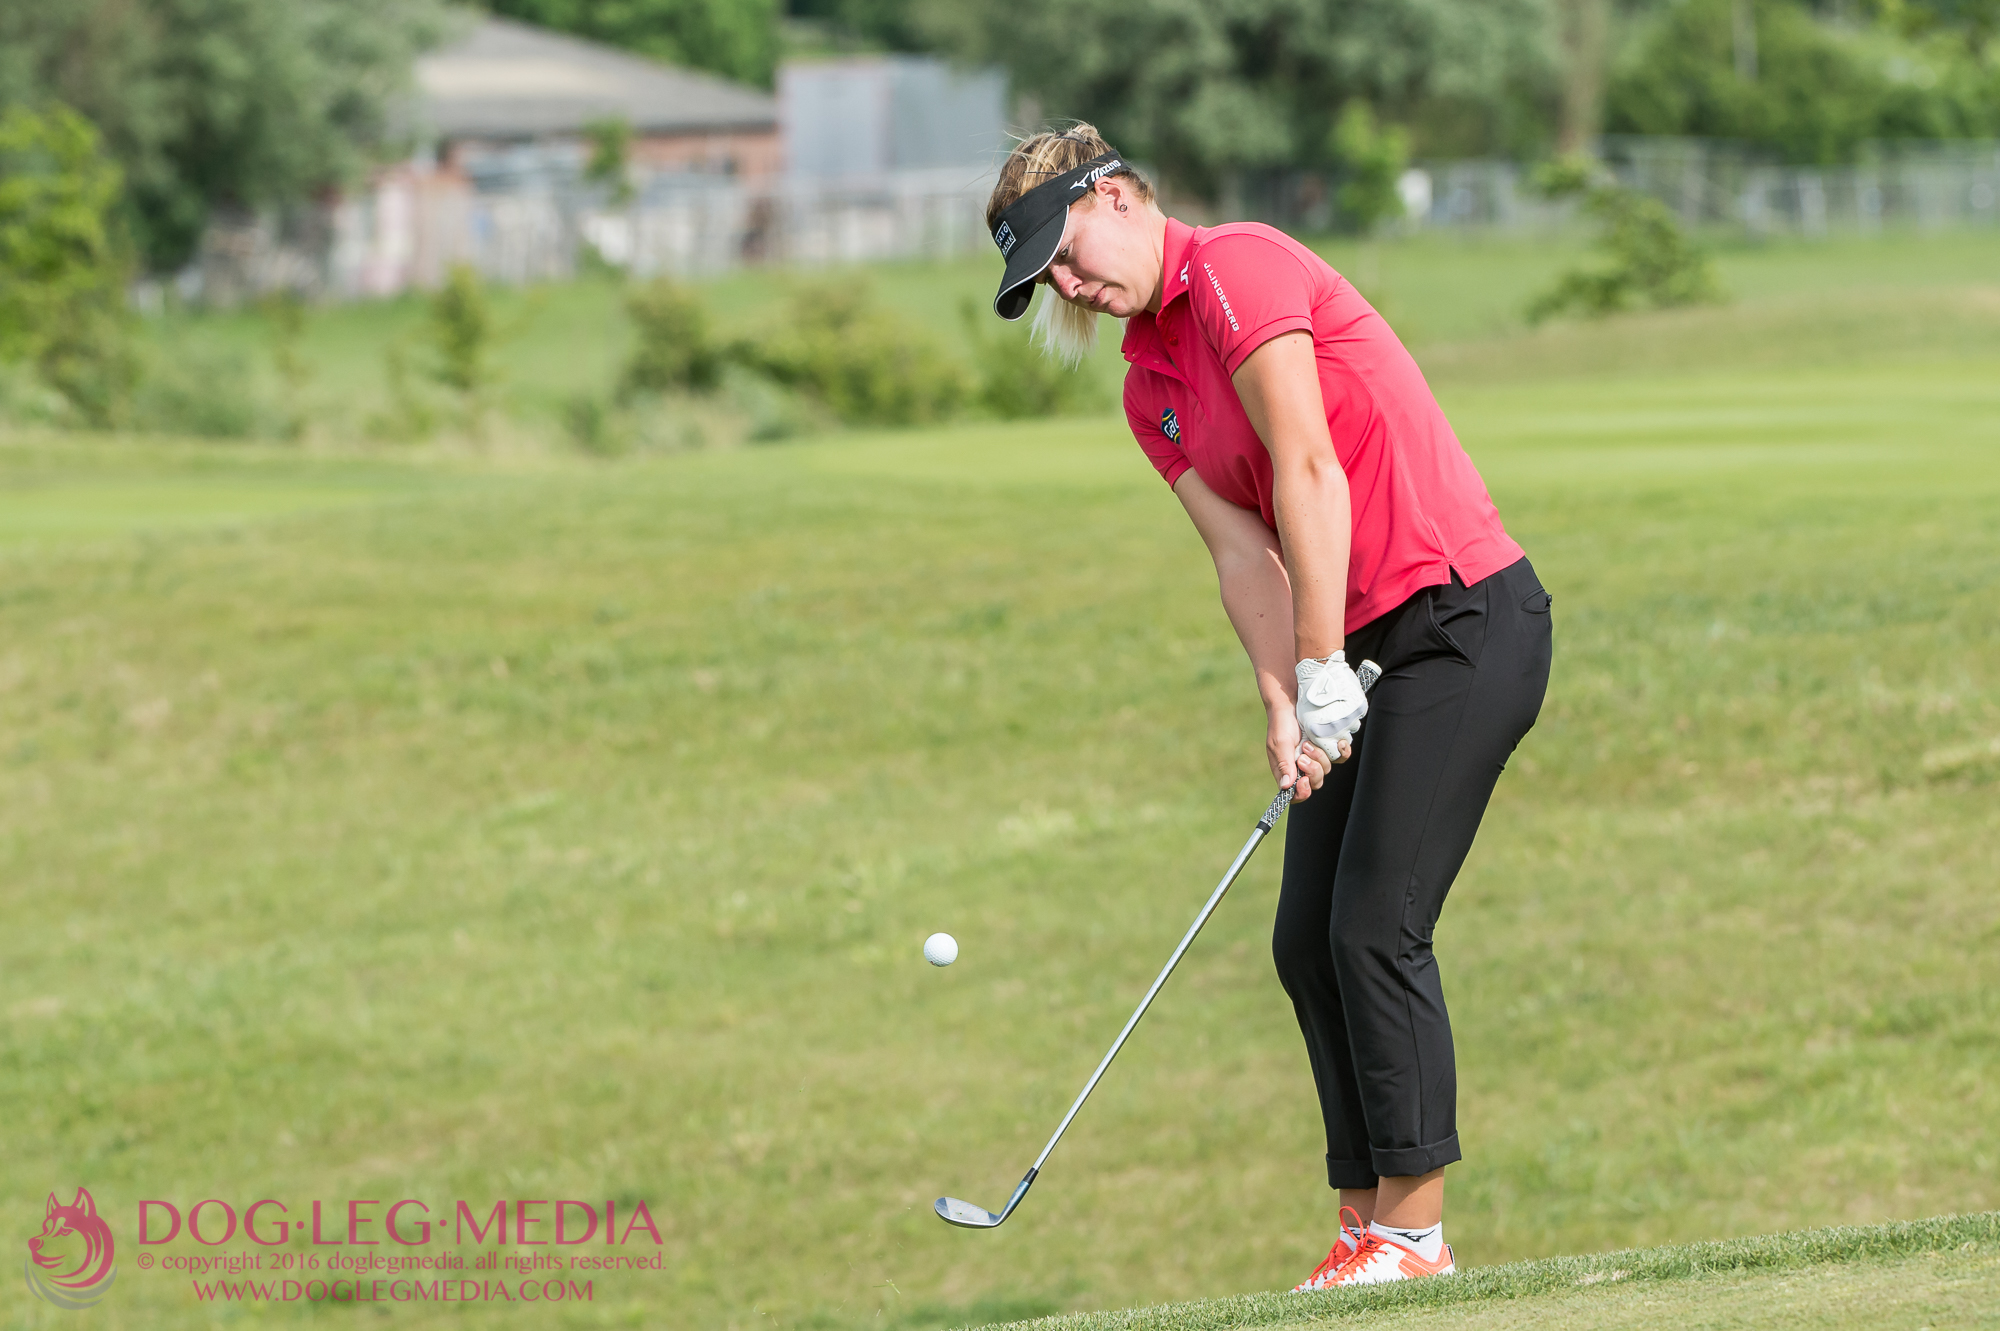 Denmark's Nicole Broch Larsen chipping onto the 15th during the afternoon match on day 2 of #INGGolfWeek